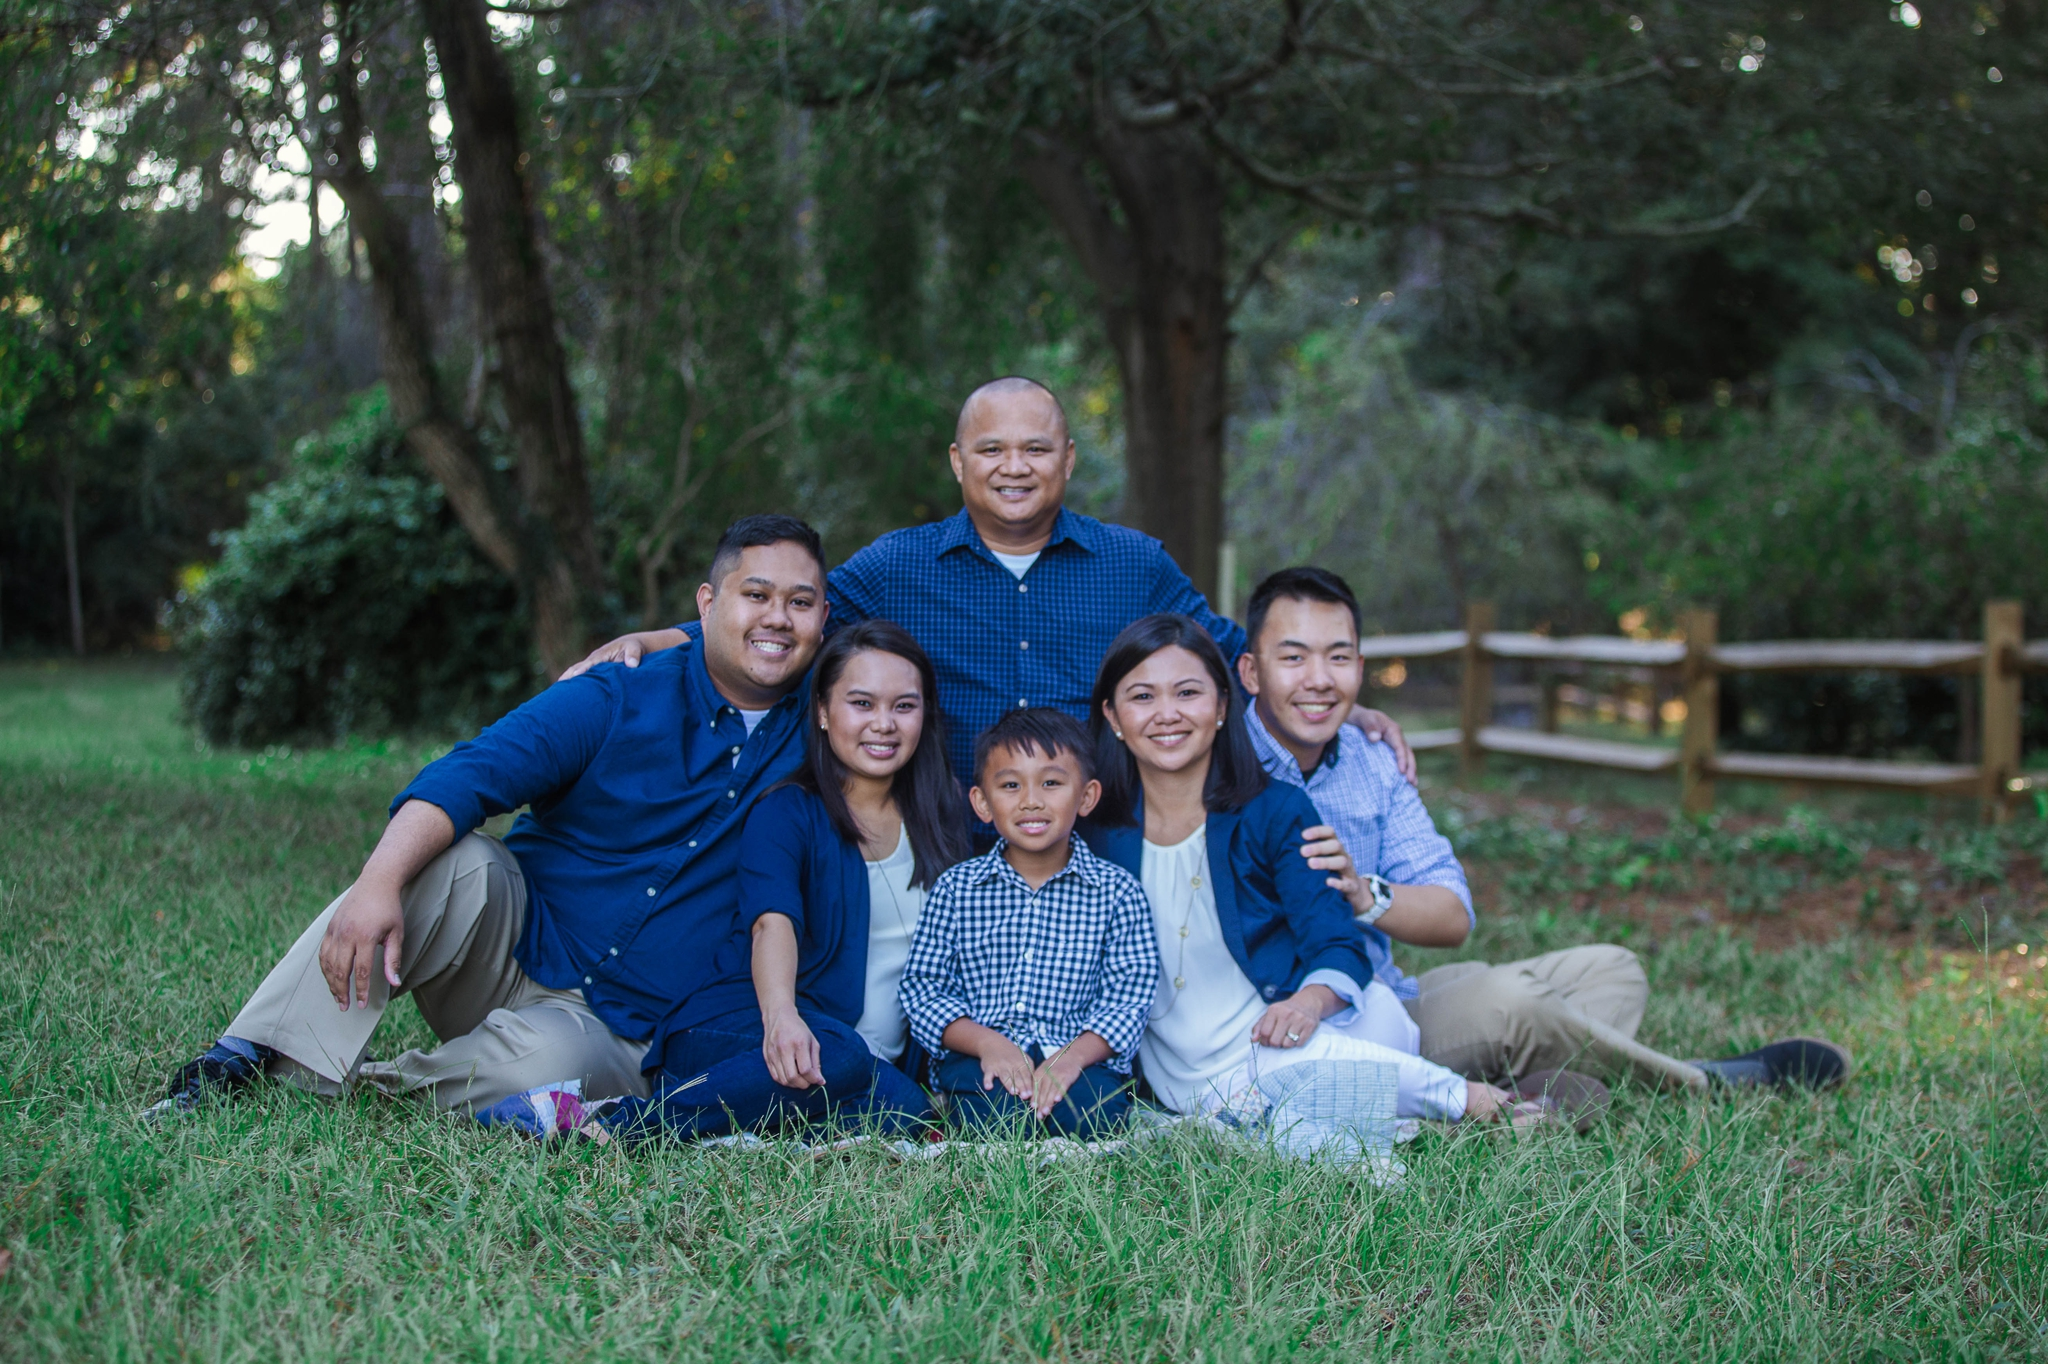 Family Photography in Southern Pines North Carolina